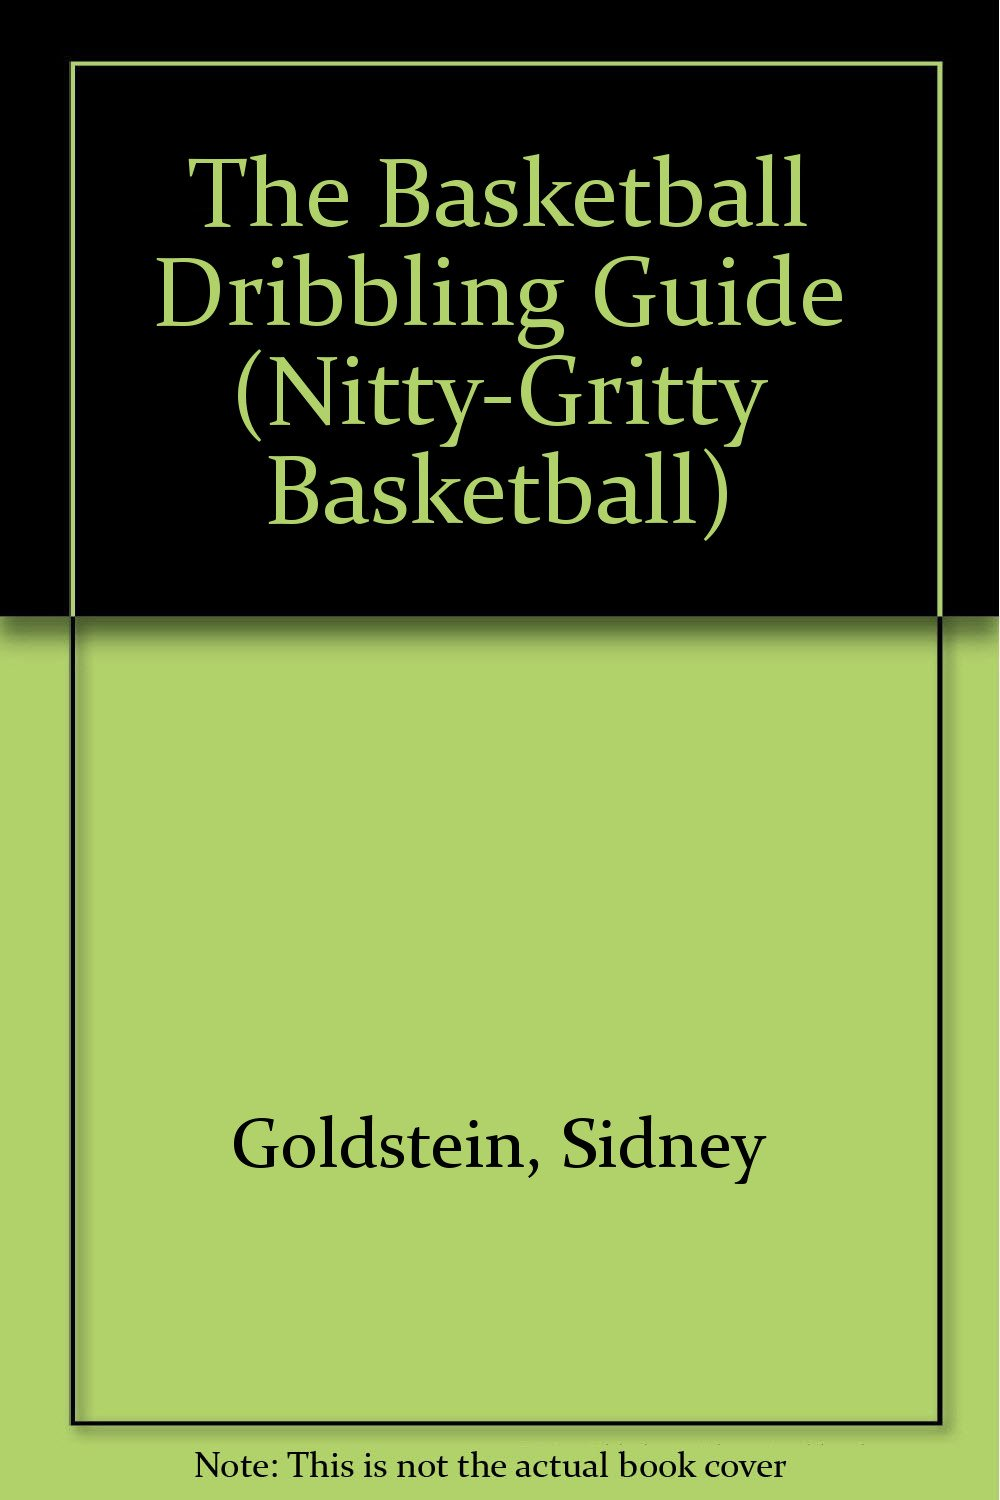 Basketball Dribbling Guide: Nitty-Gritty Basketball Guide